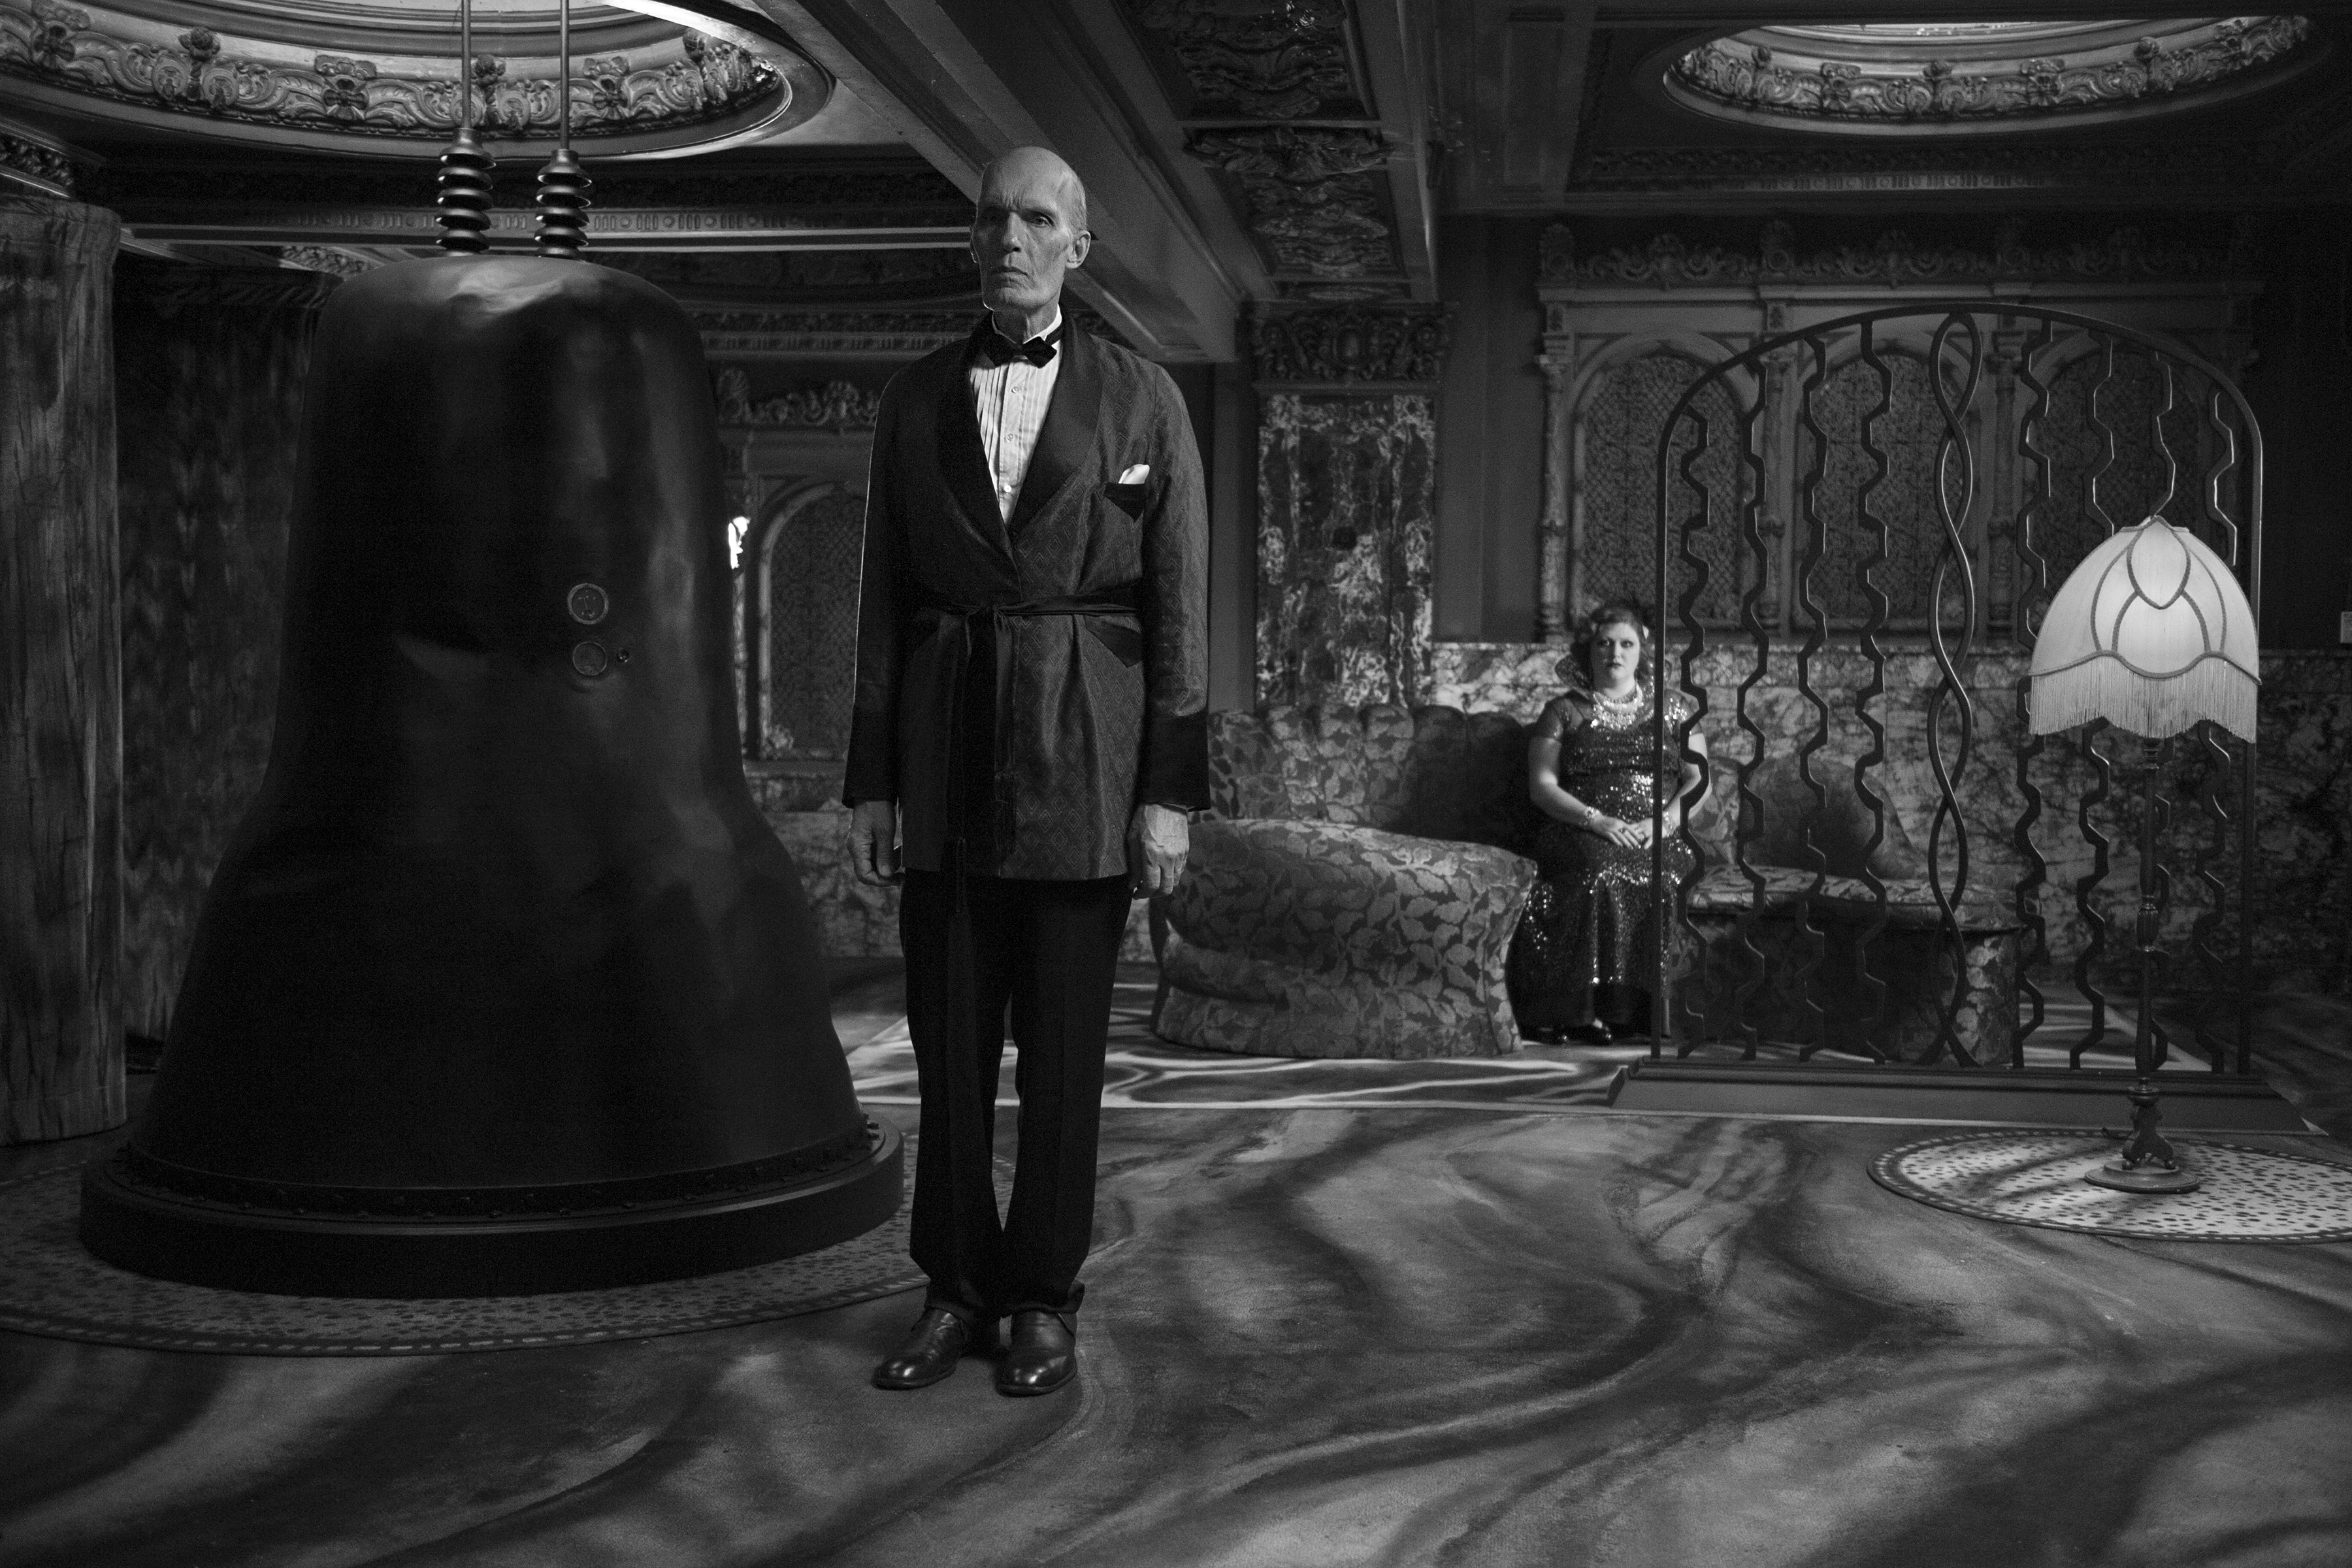 rr 16592 bw r Recapping Twin Peaks: The Return: Part 8